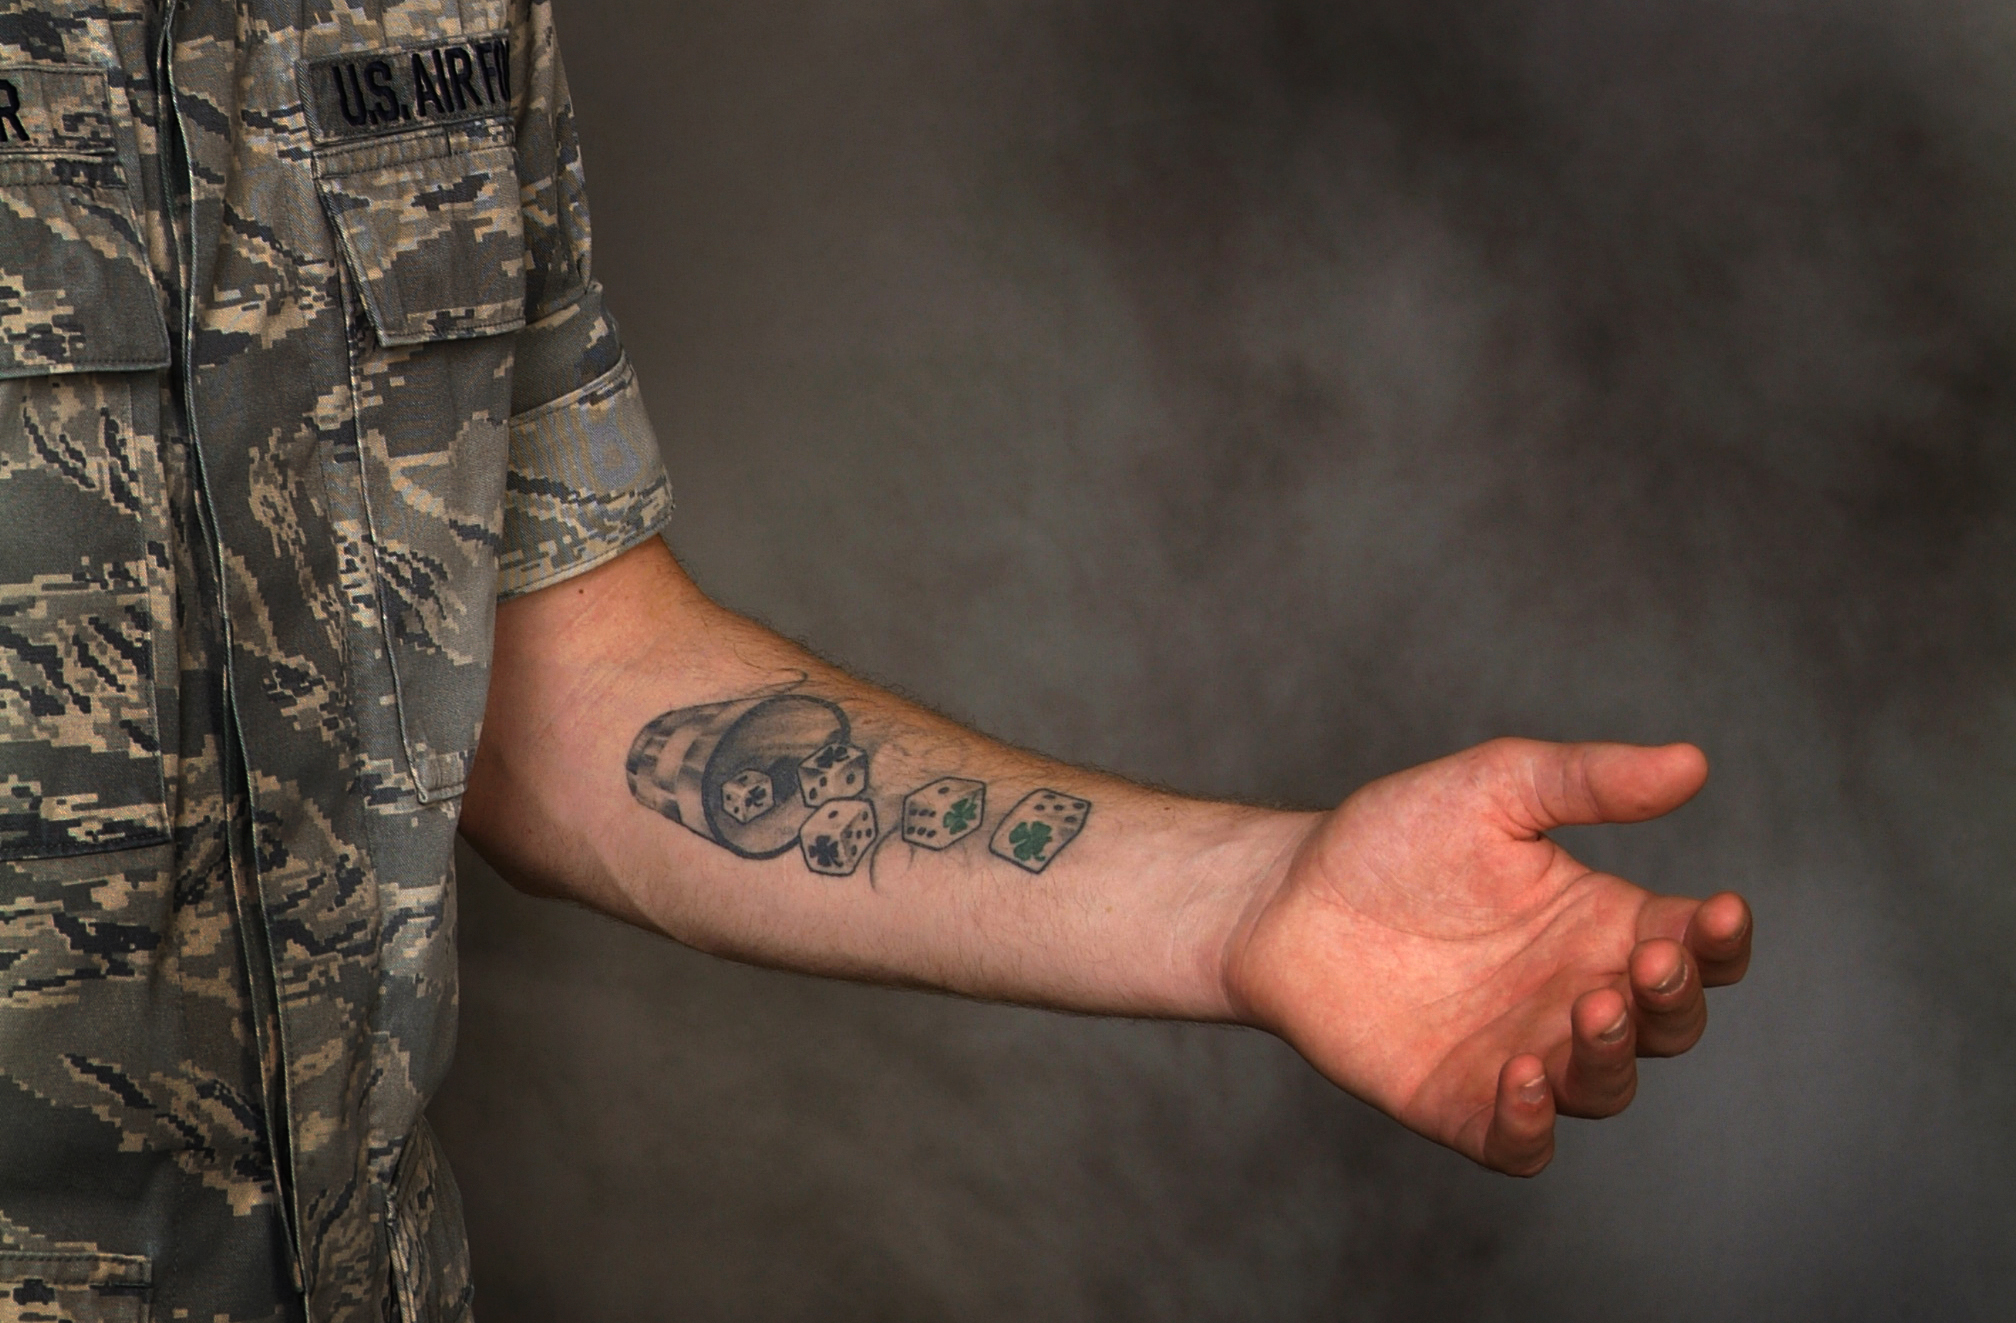 Air Force Special Operations Tattoos